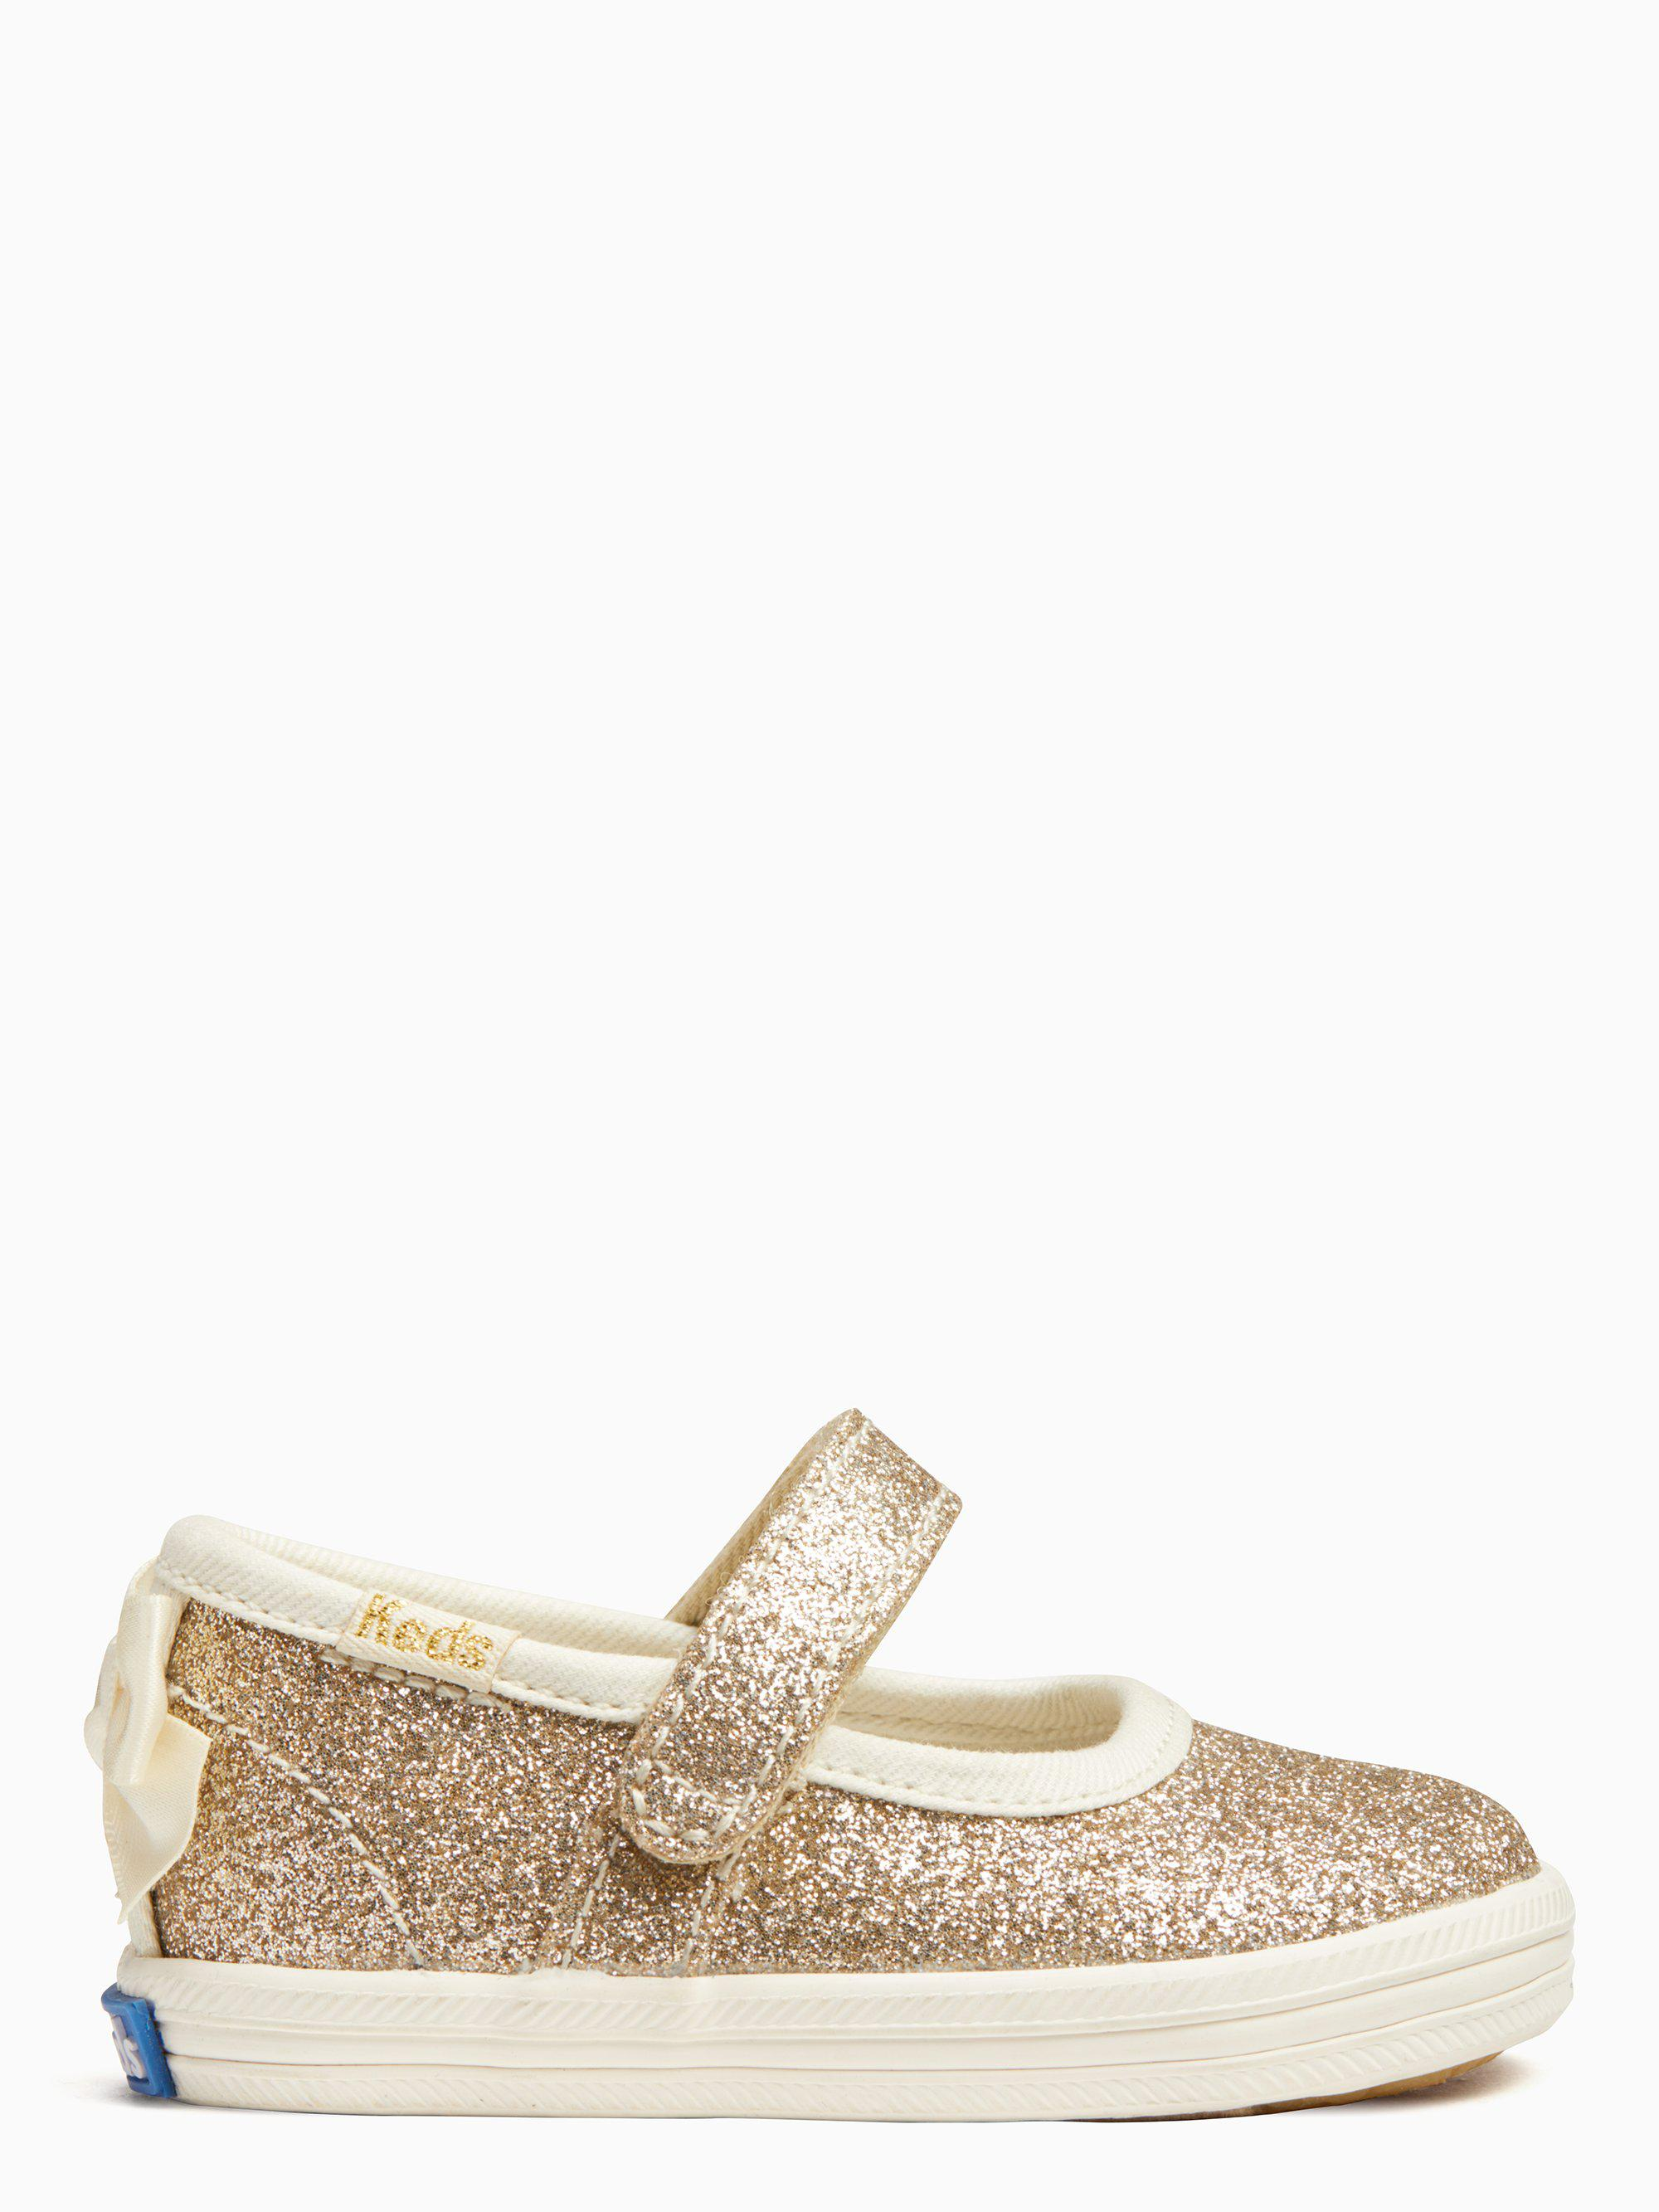 934540f23 Lyst - Kate Spade Keds X New York Sloan Mary Jane Crib Sneakers in ...